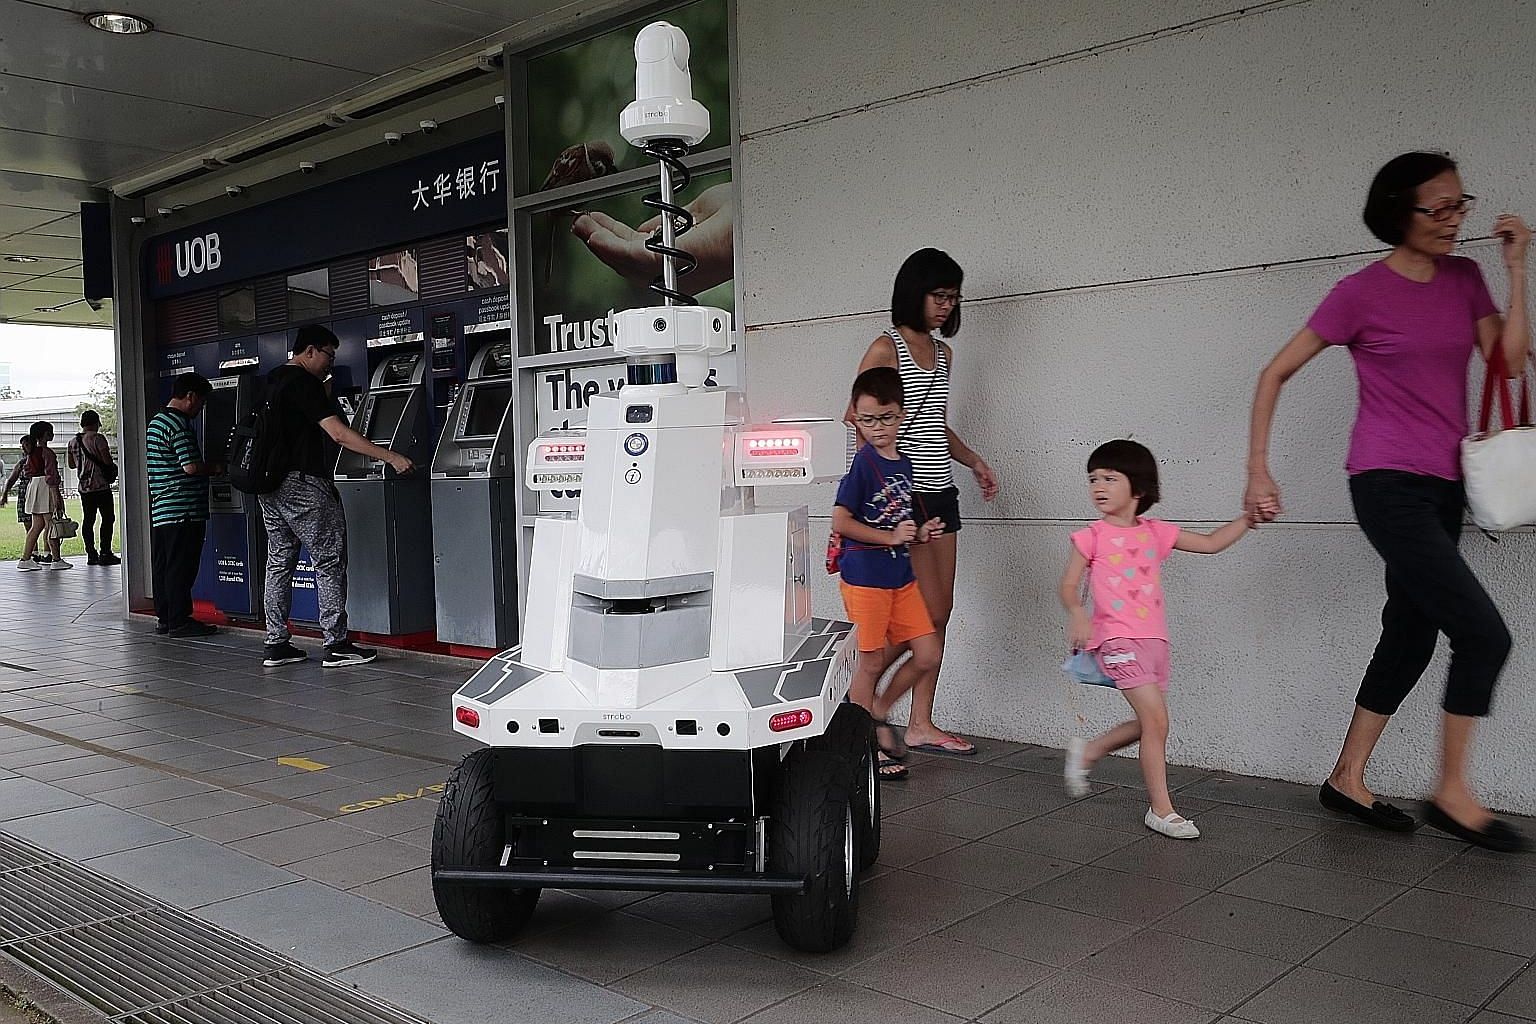 The robot deployed by LTA during Exercise Station Guard at Hougang MRT station yesterday. Developed by ST Engineering, it is equipped with seven cameras to give it a 360-degree view, and has GPS and other sensors. The robot's control console was loca